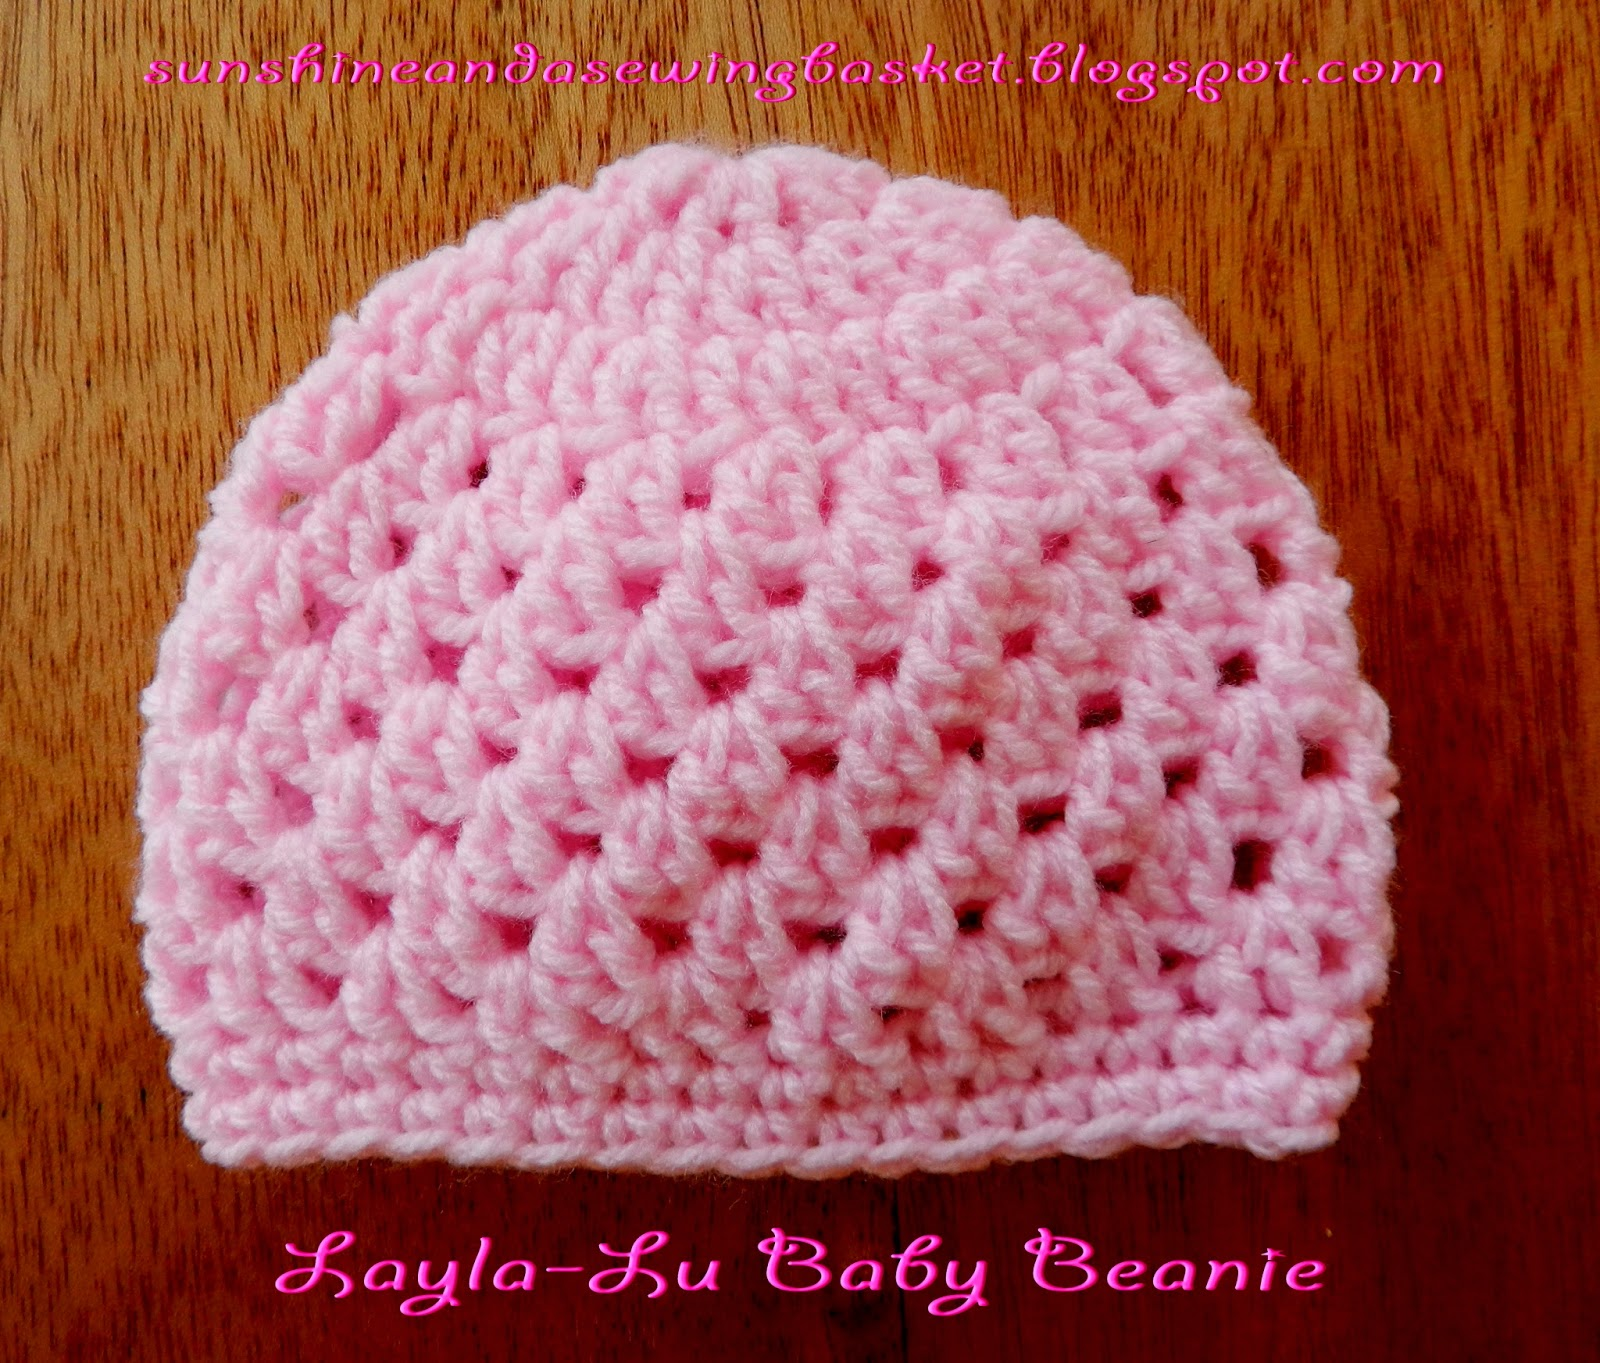 Crochet Stitches Conversion Chart : As promised here is the pattern for the last beanie I made for my